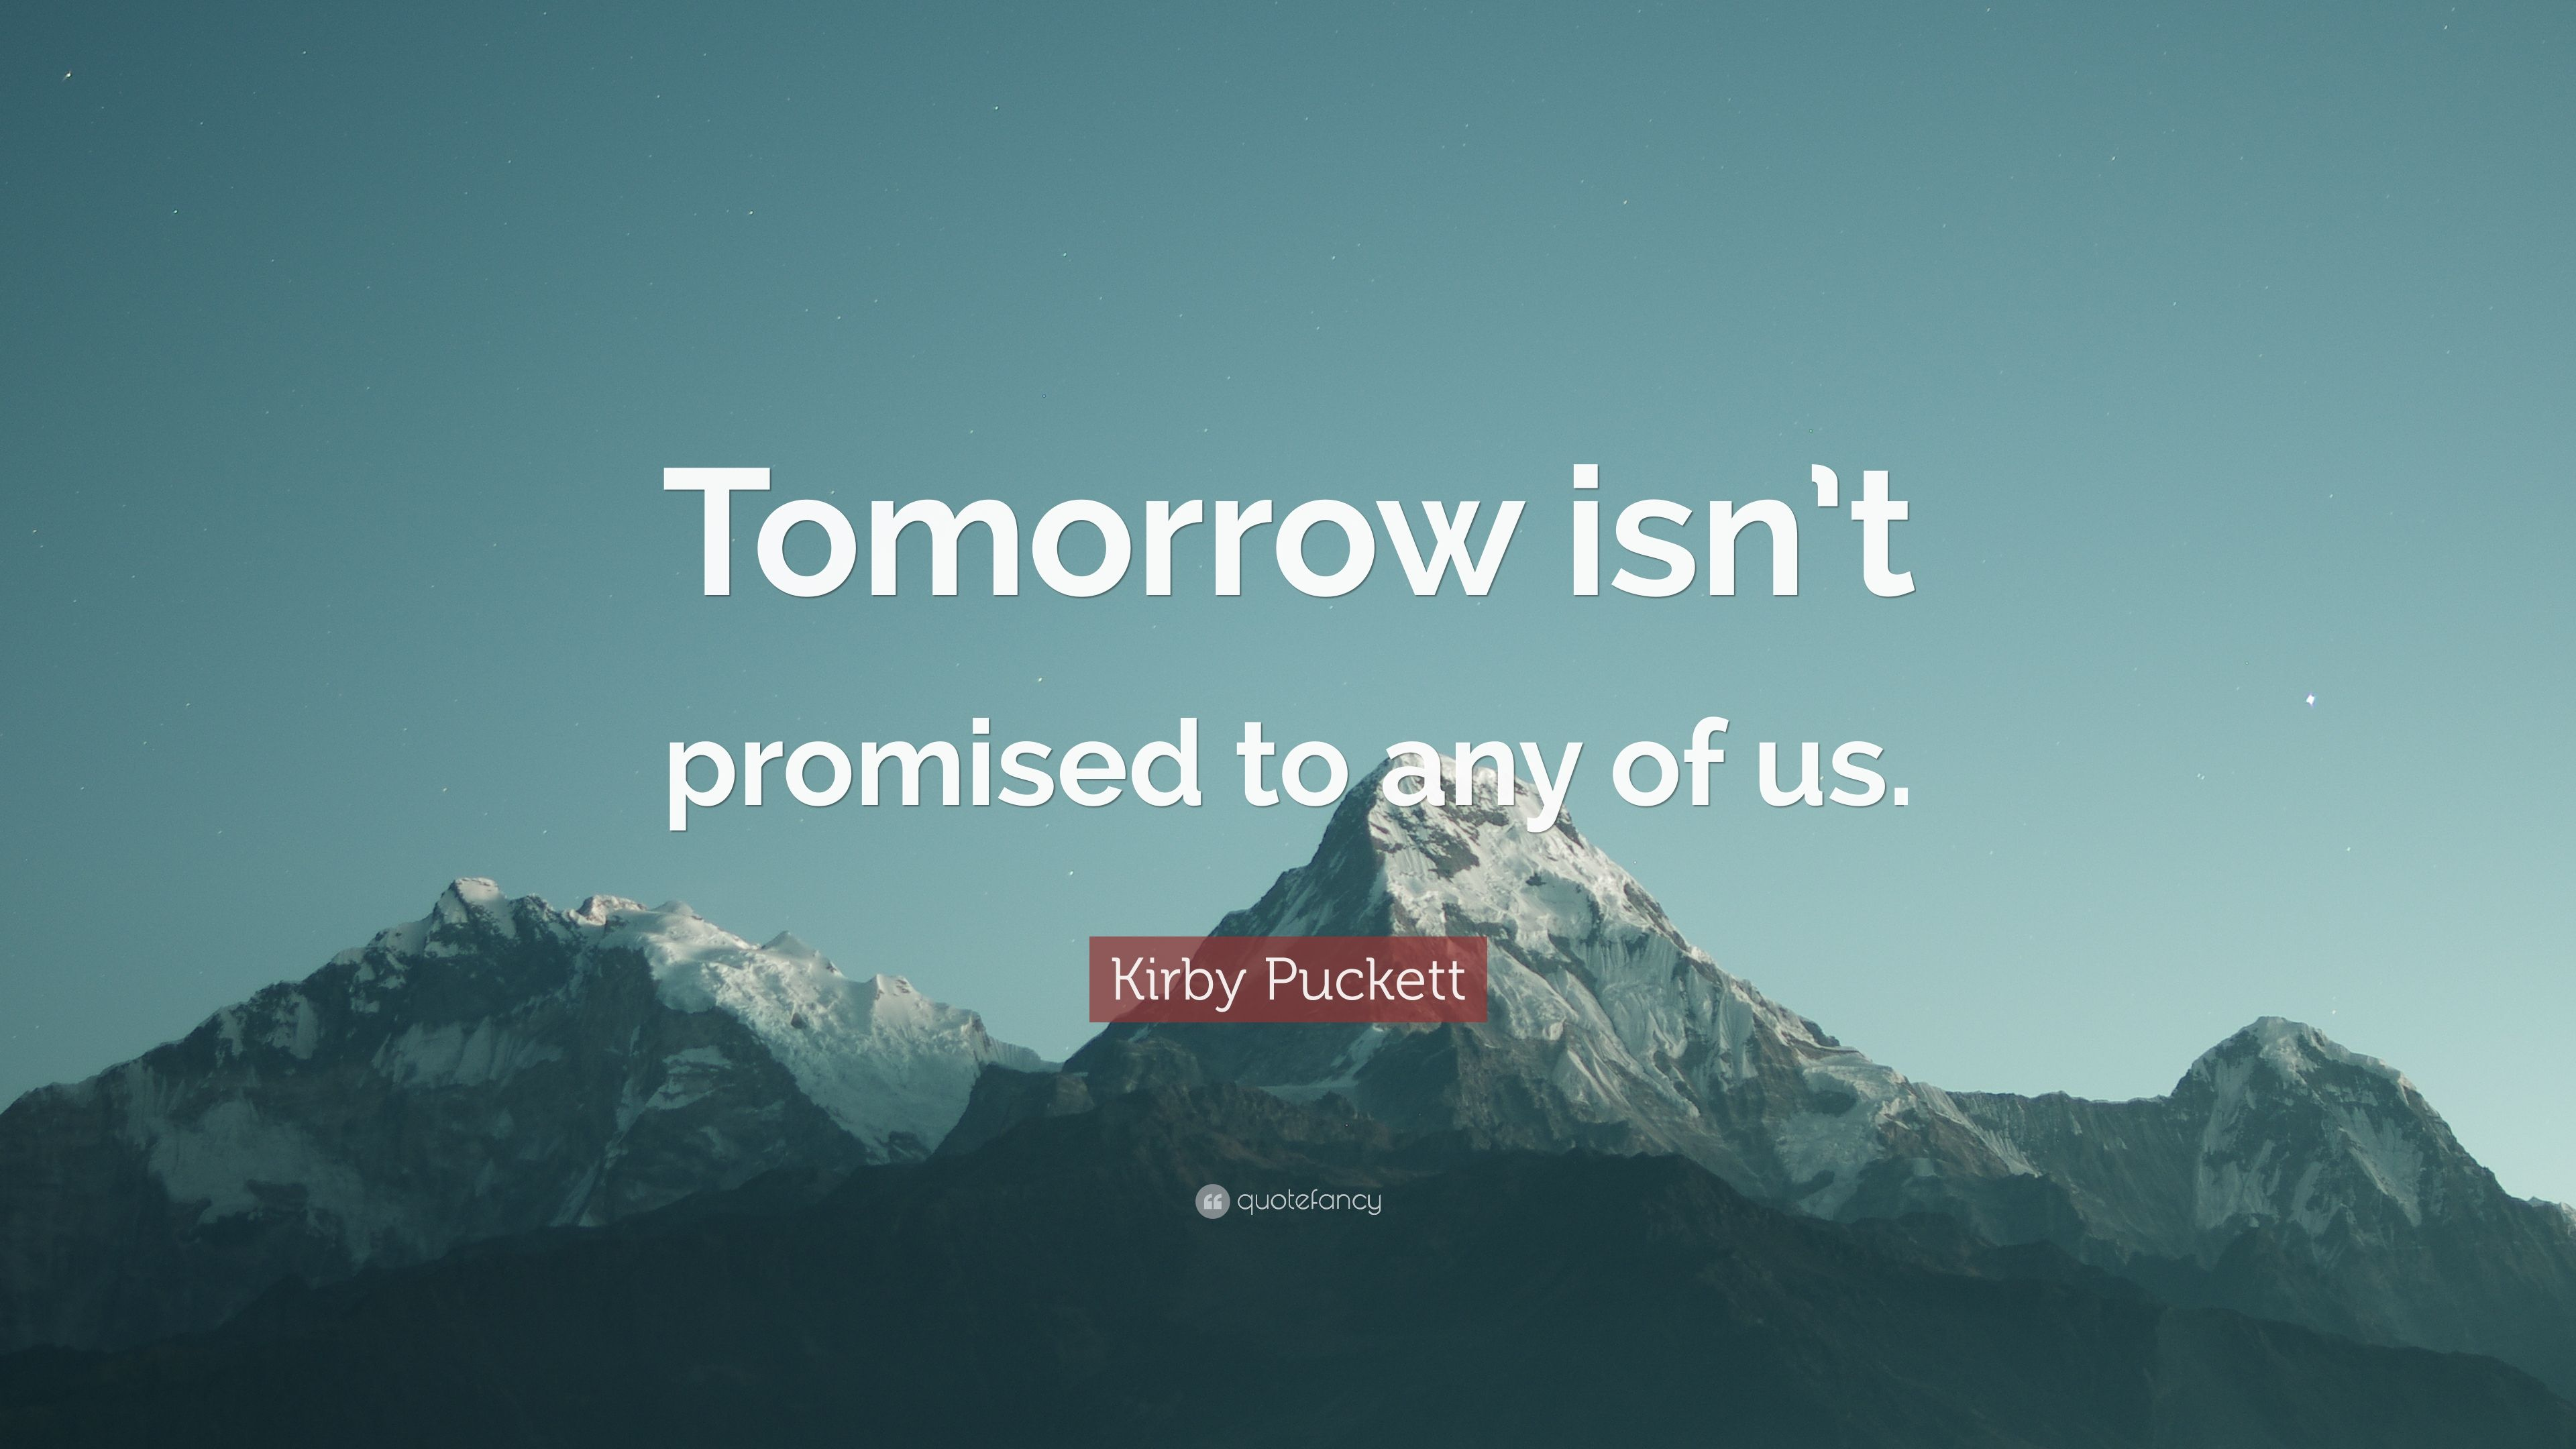 kirby puckett quote tomorrow isnt promised to any of us